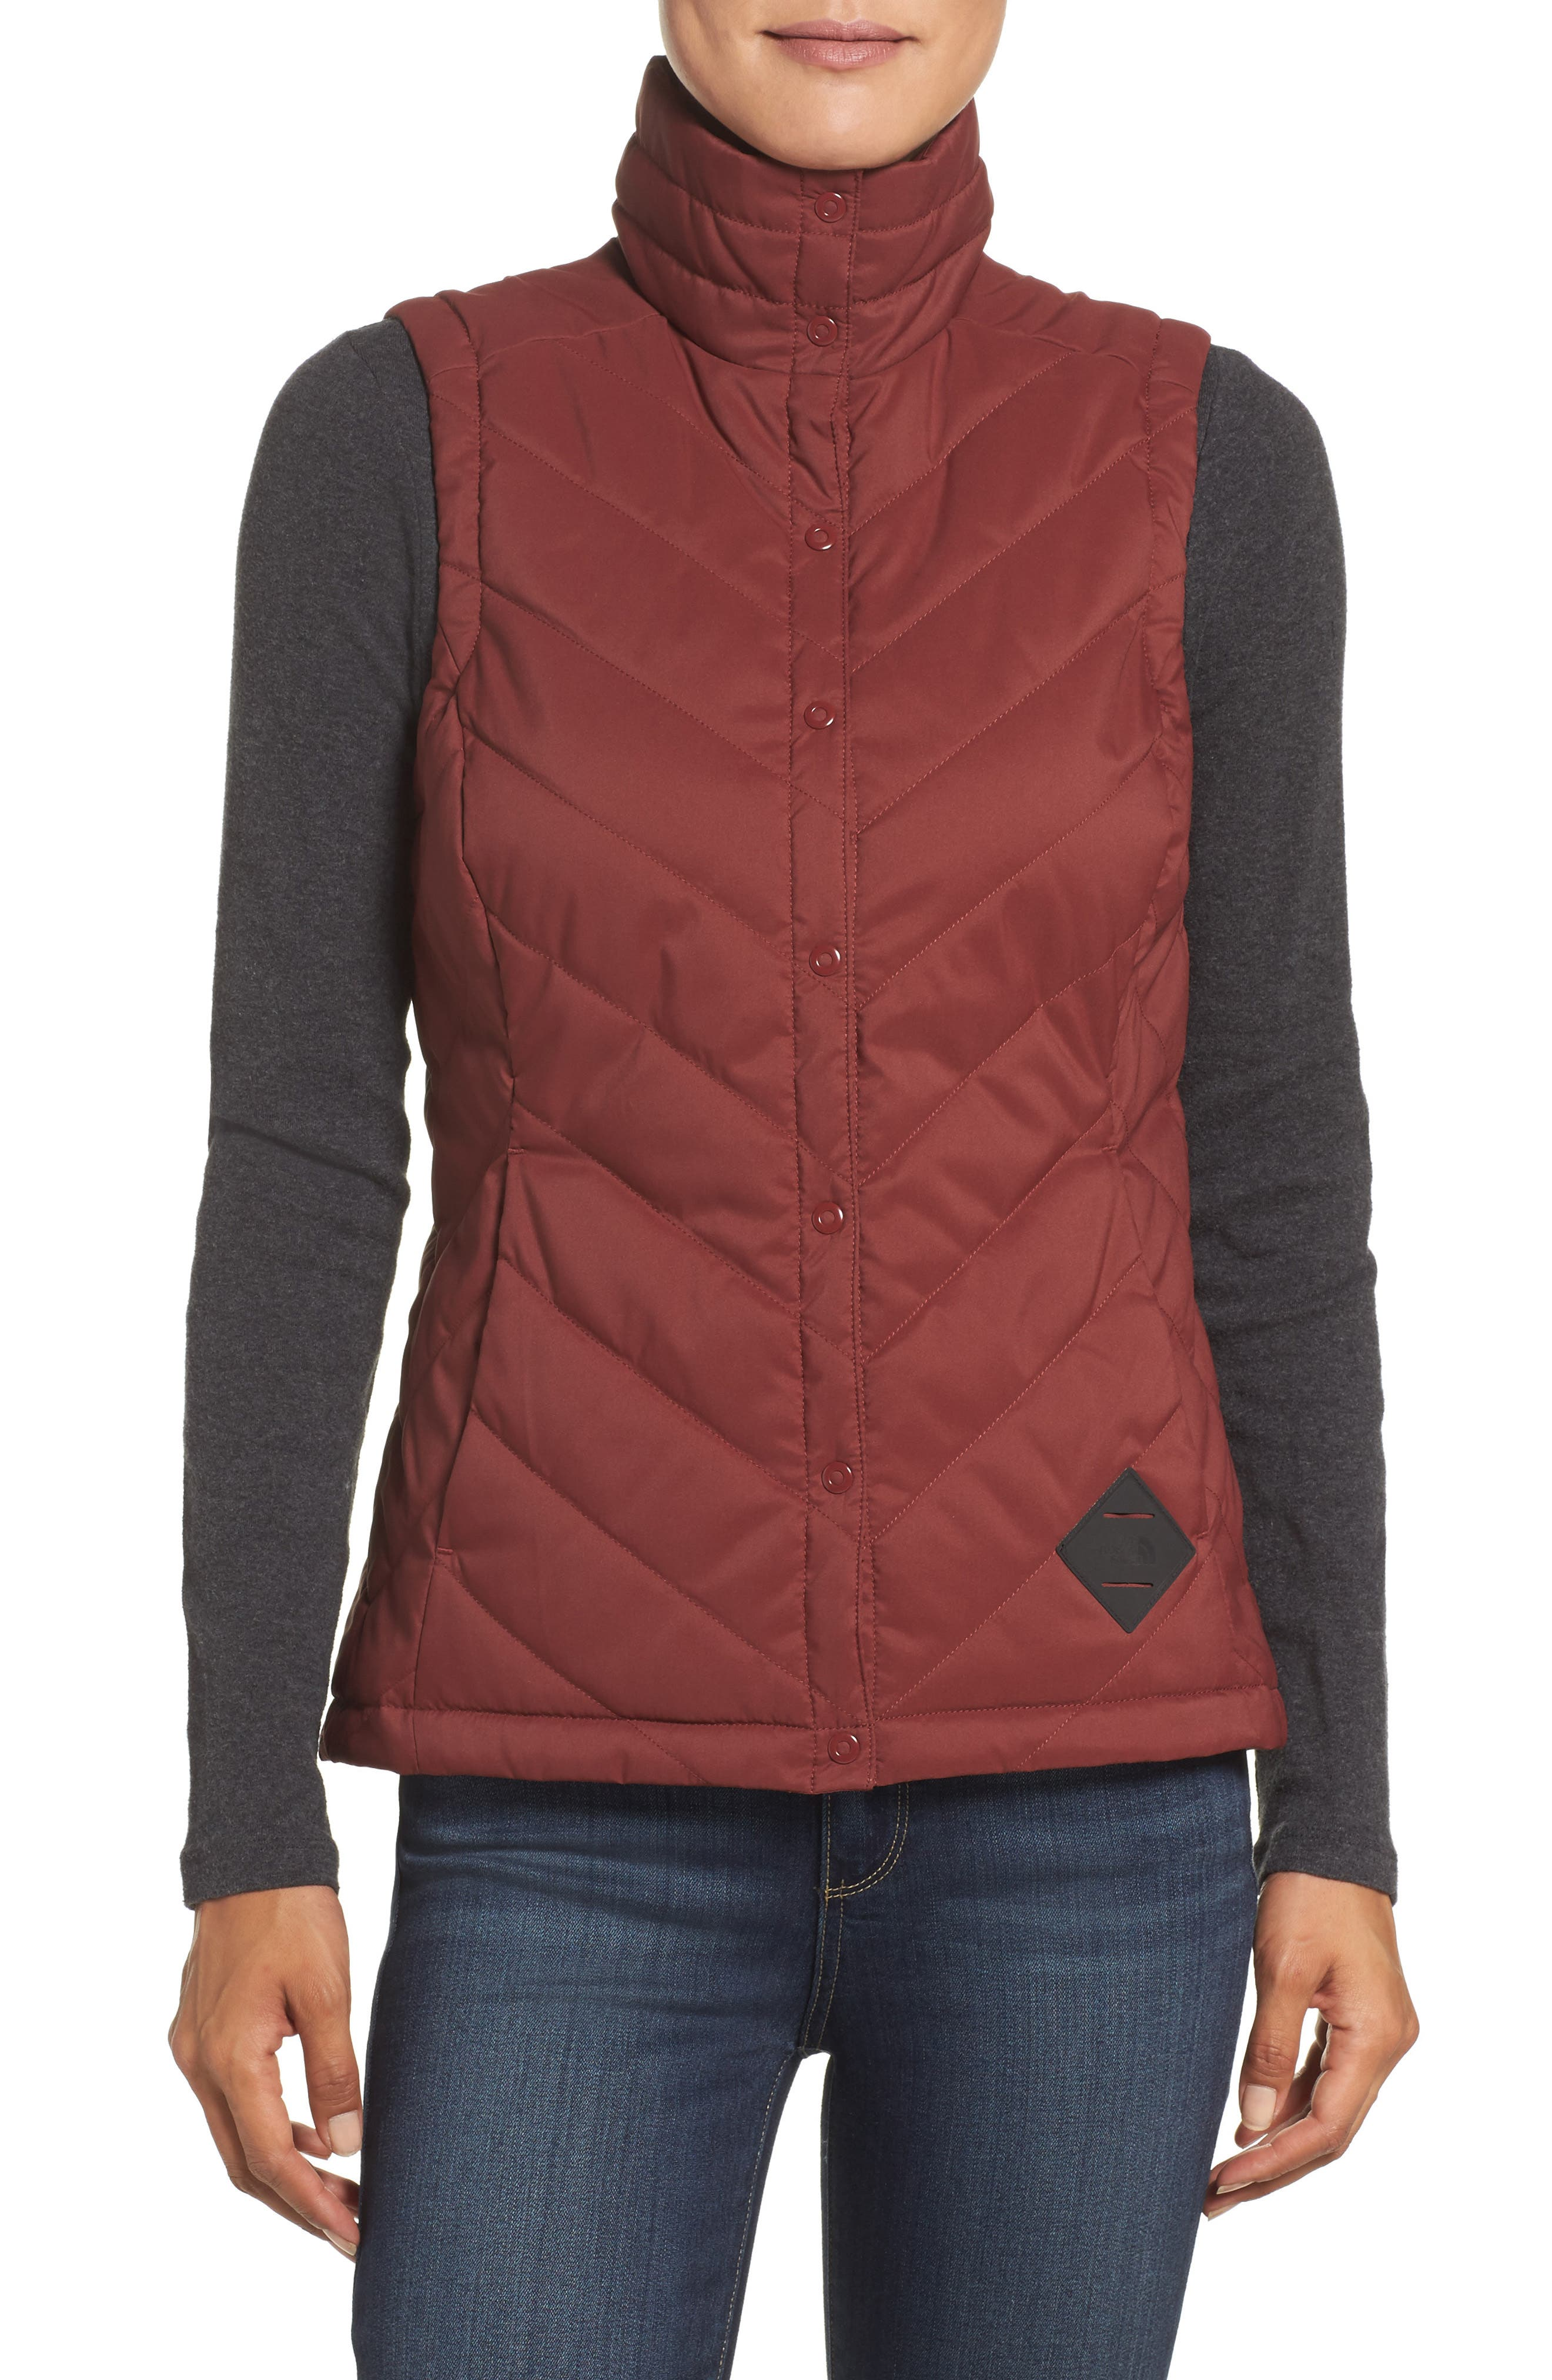 Alternate Image 1 Selected - The North Face Rainier Puffer Vest (Nordstrom Exclusive)